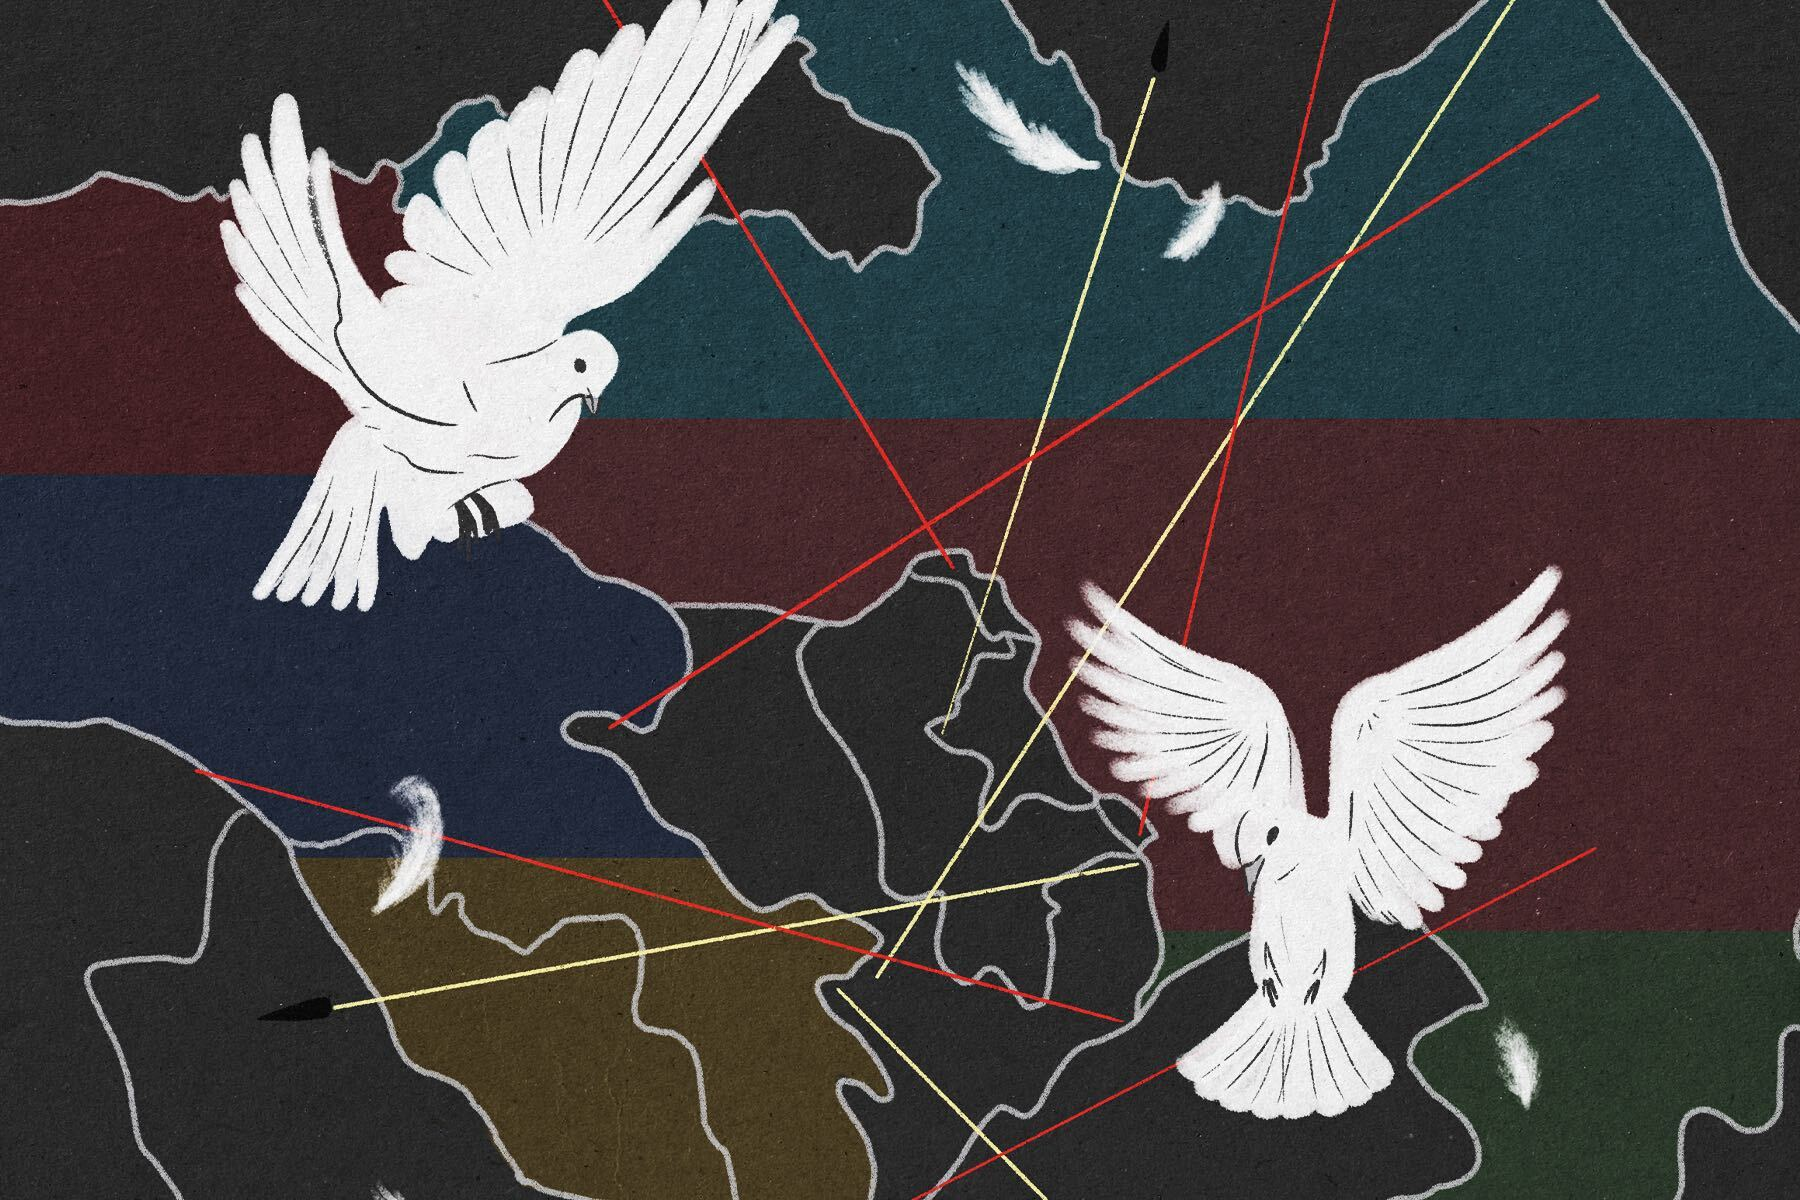 Illustration by Xingzhou Cheng for an article on the Nagorno-Karabakh Conflict